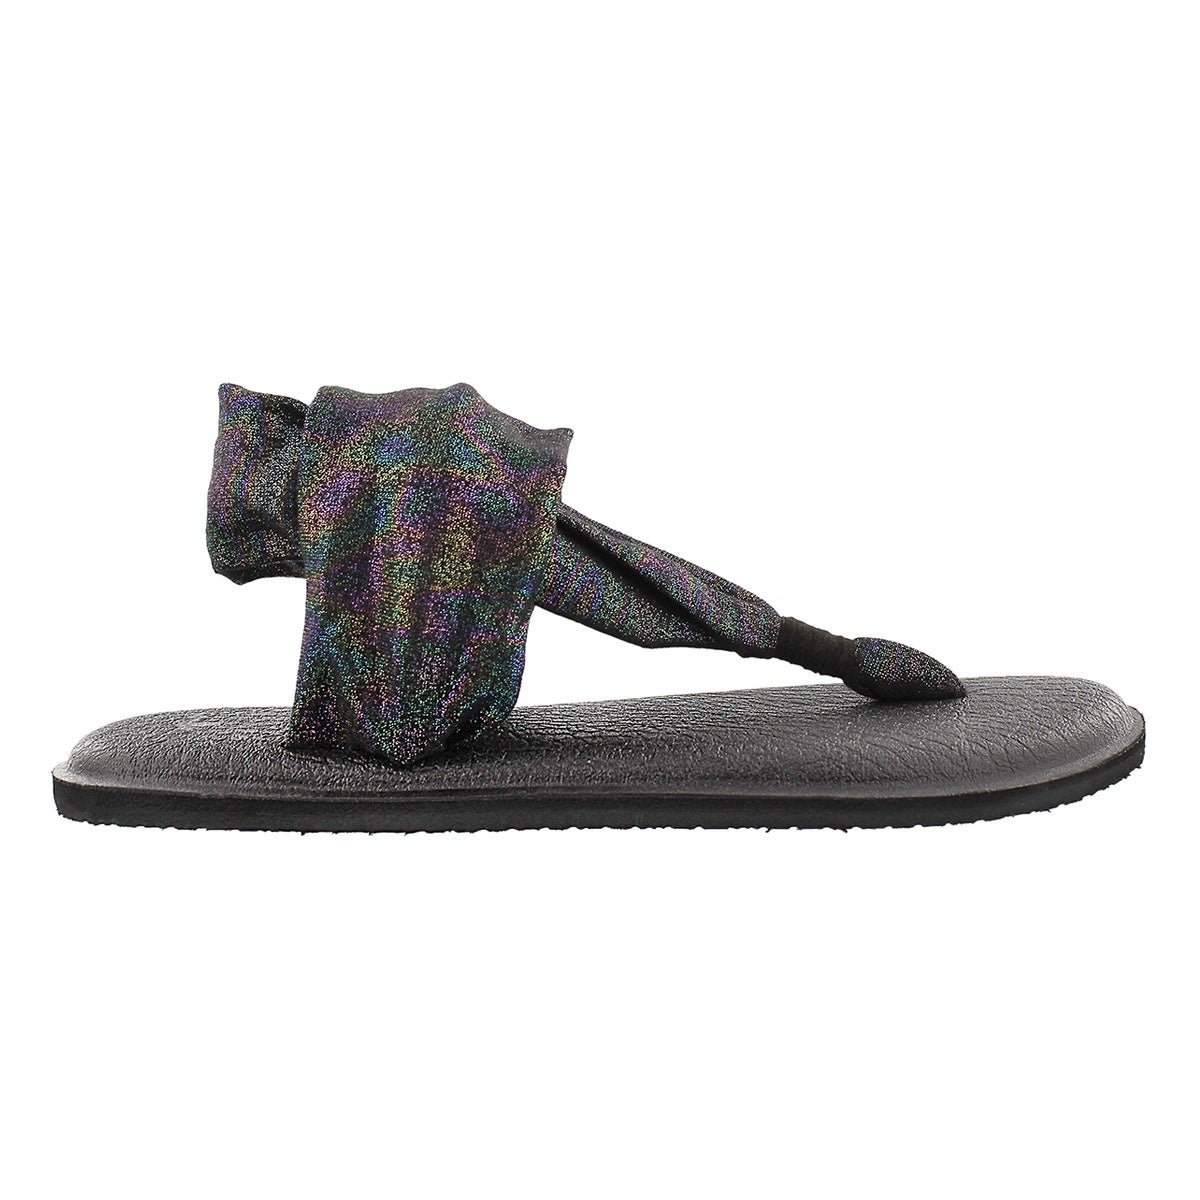 Lds YogaSling blk rainbow metallic thong